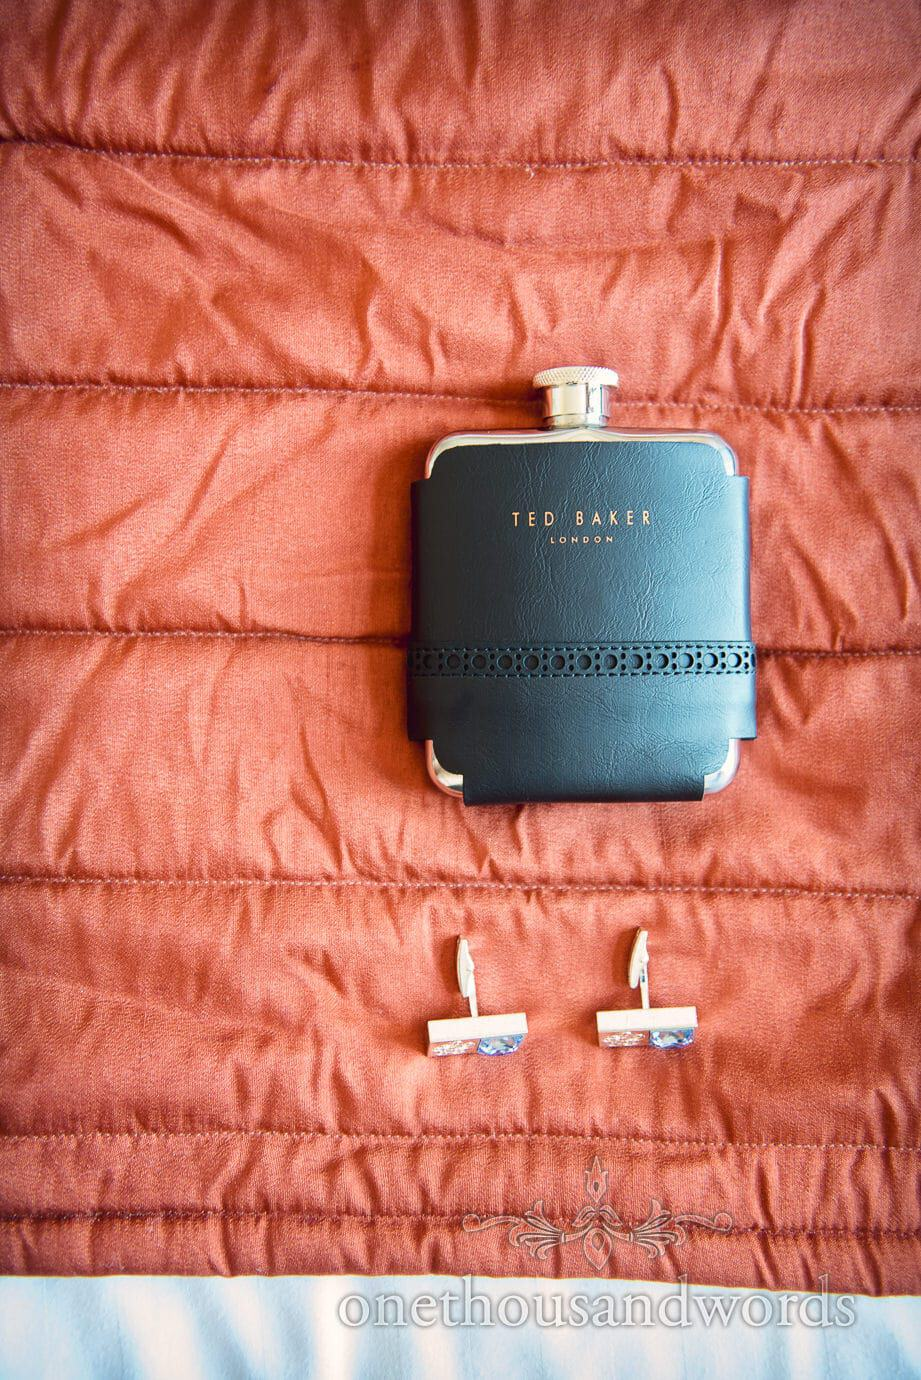 Ted Baker hip flask with silver and blue cuff links on red bed spread on wedding morning